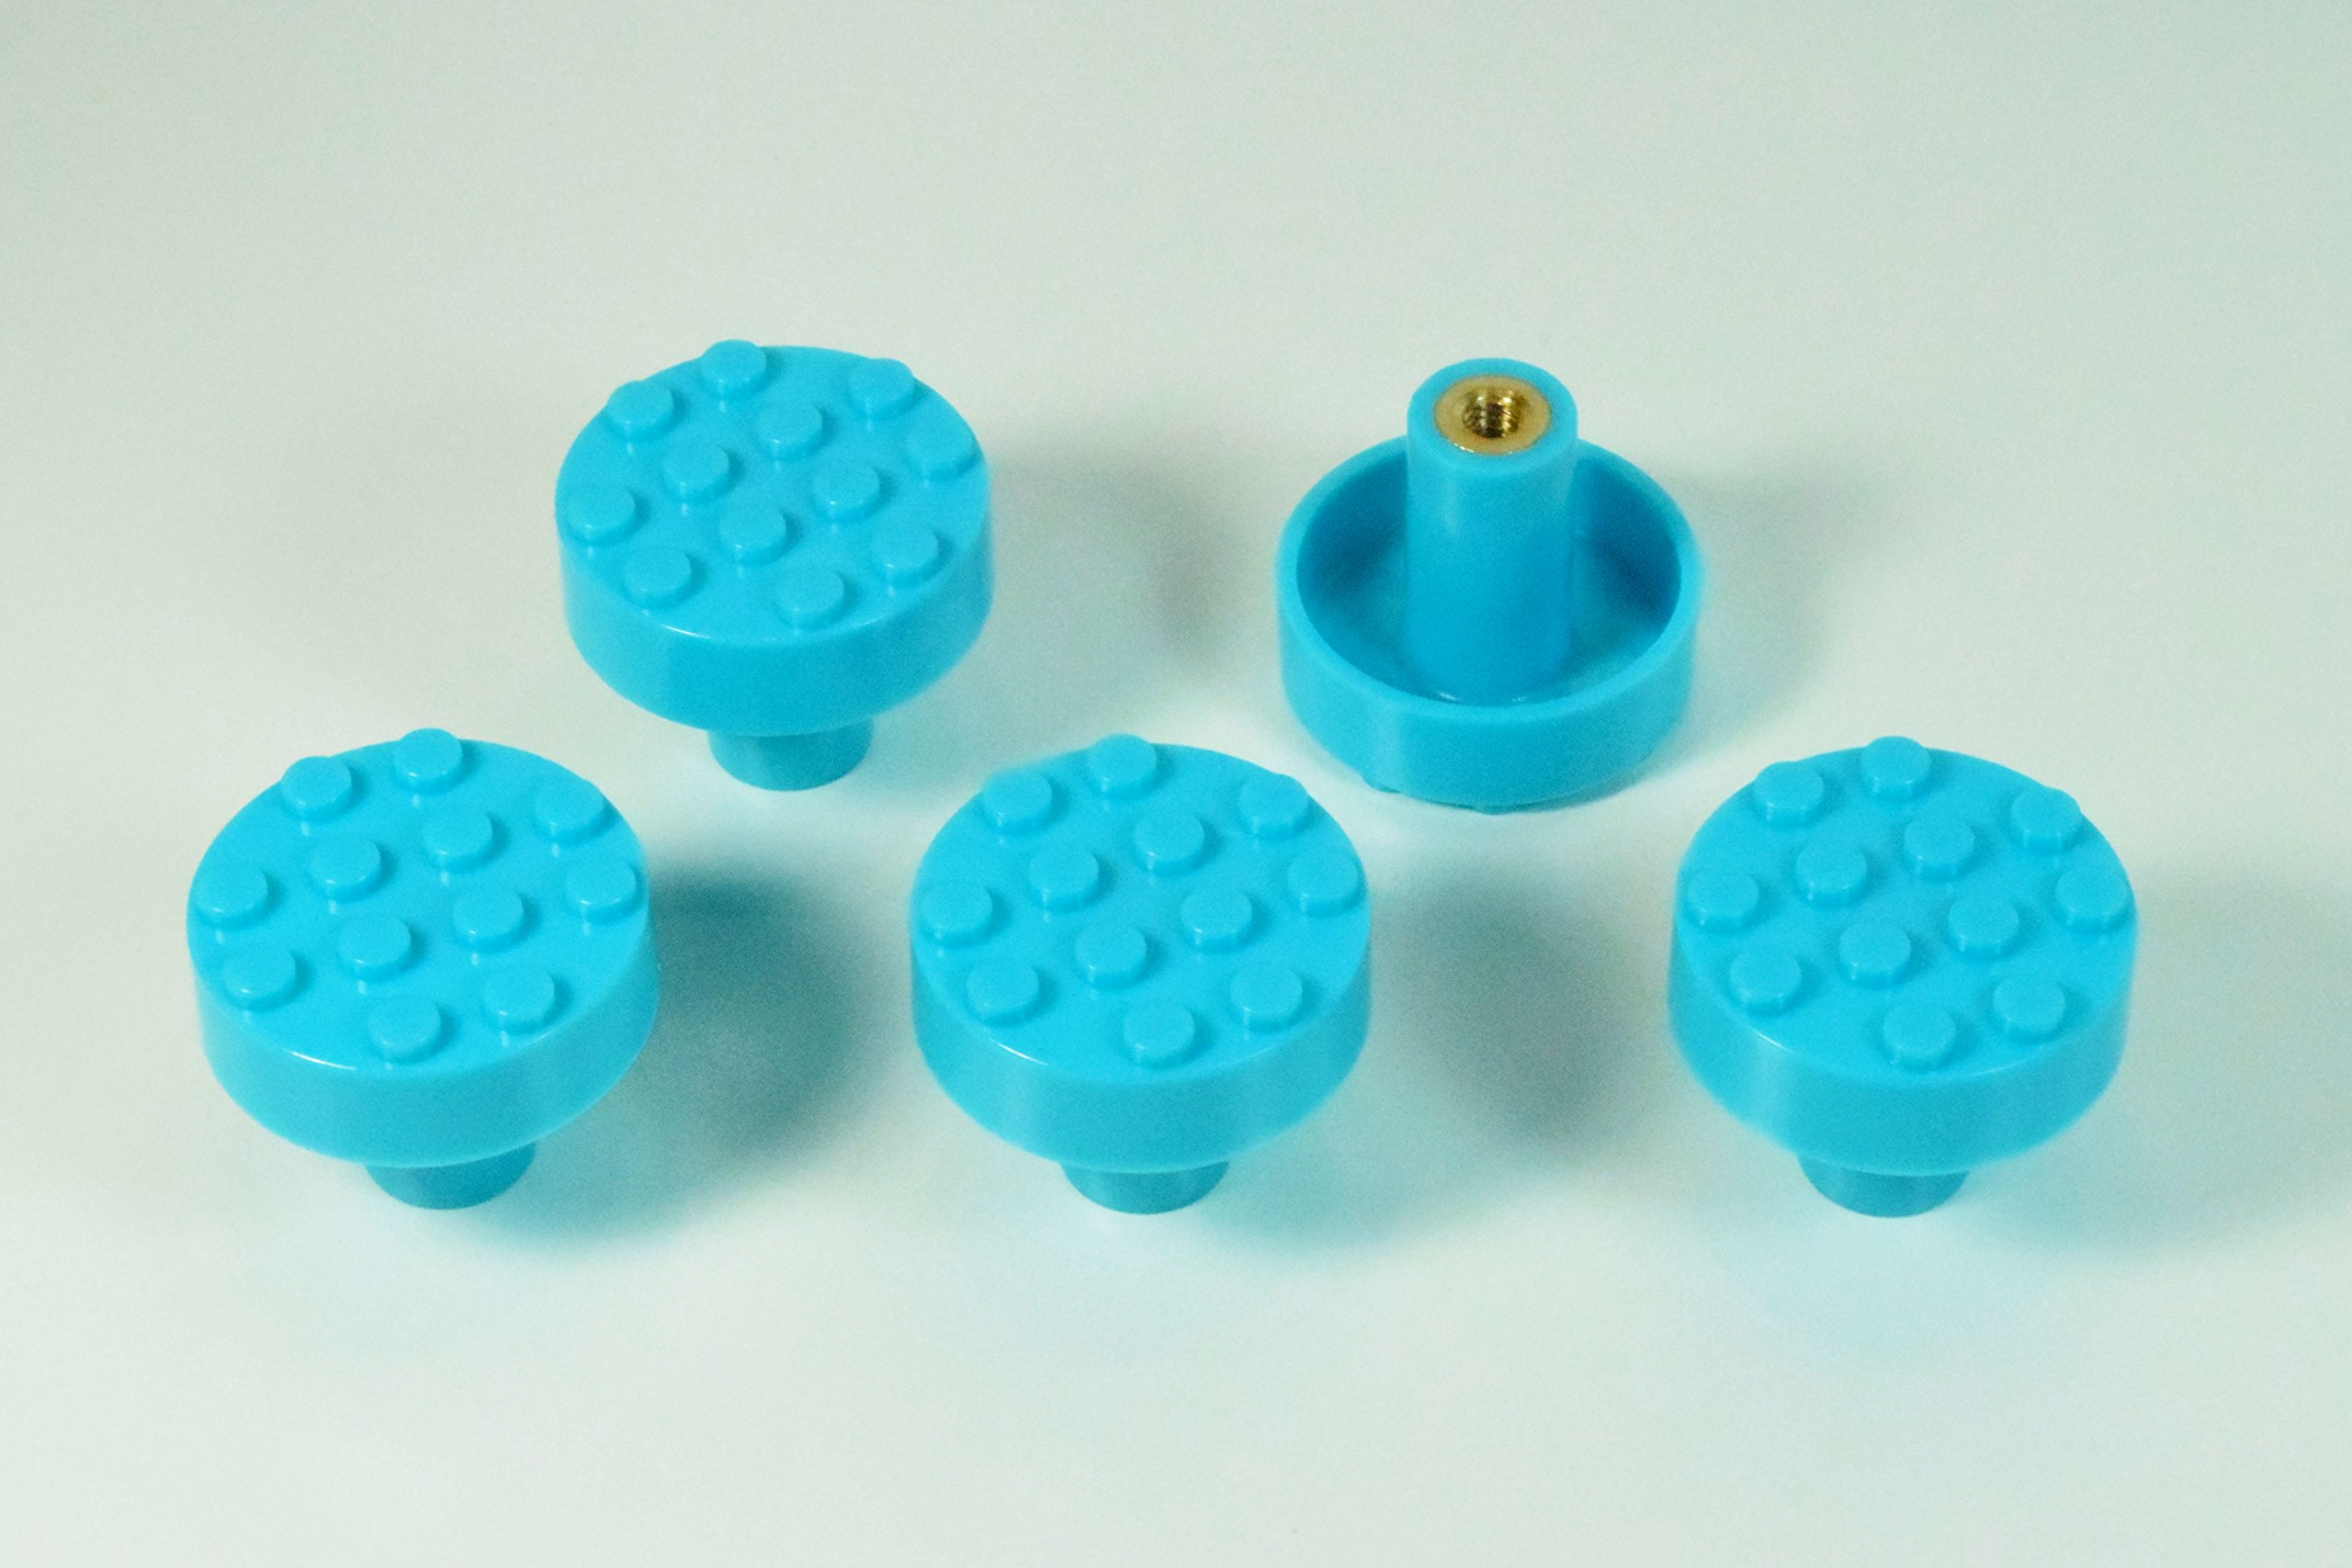 Set of 5 Build-On Brick Knobs, Gem Colors (Turquoise)